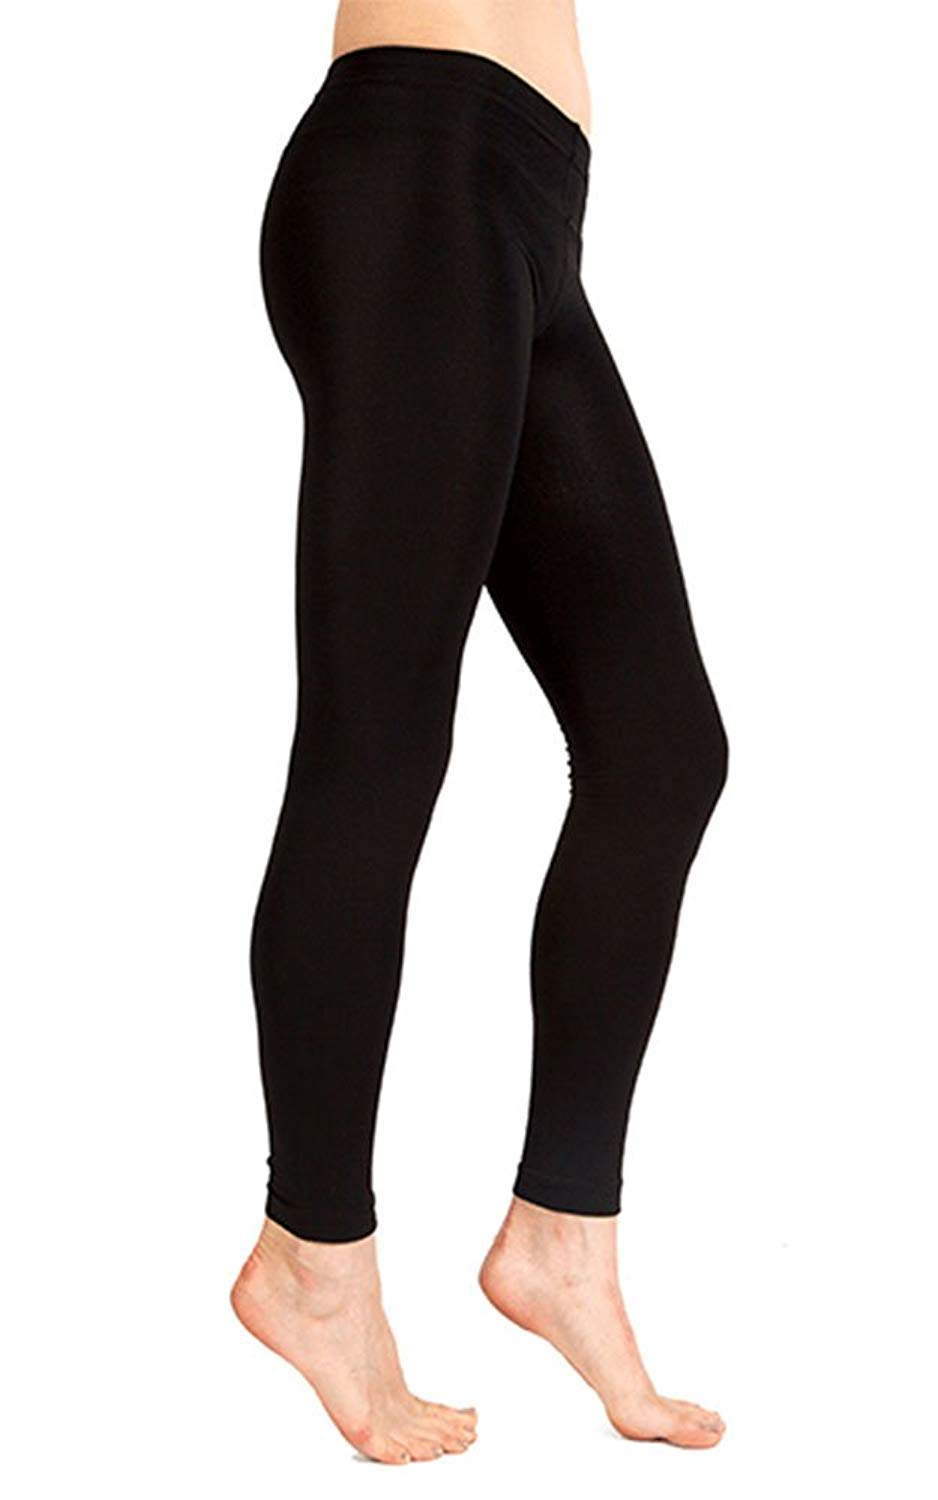 0ab711c1763 Get Quotations · Plush Women s Fleece Lined Tights